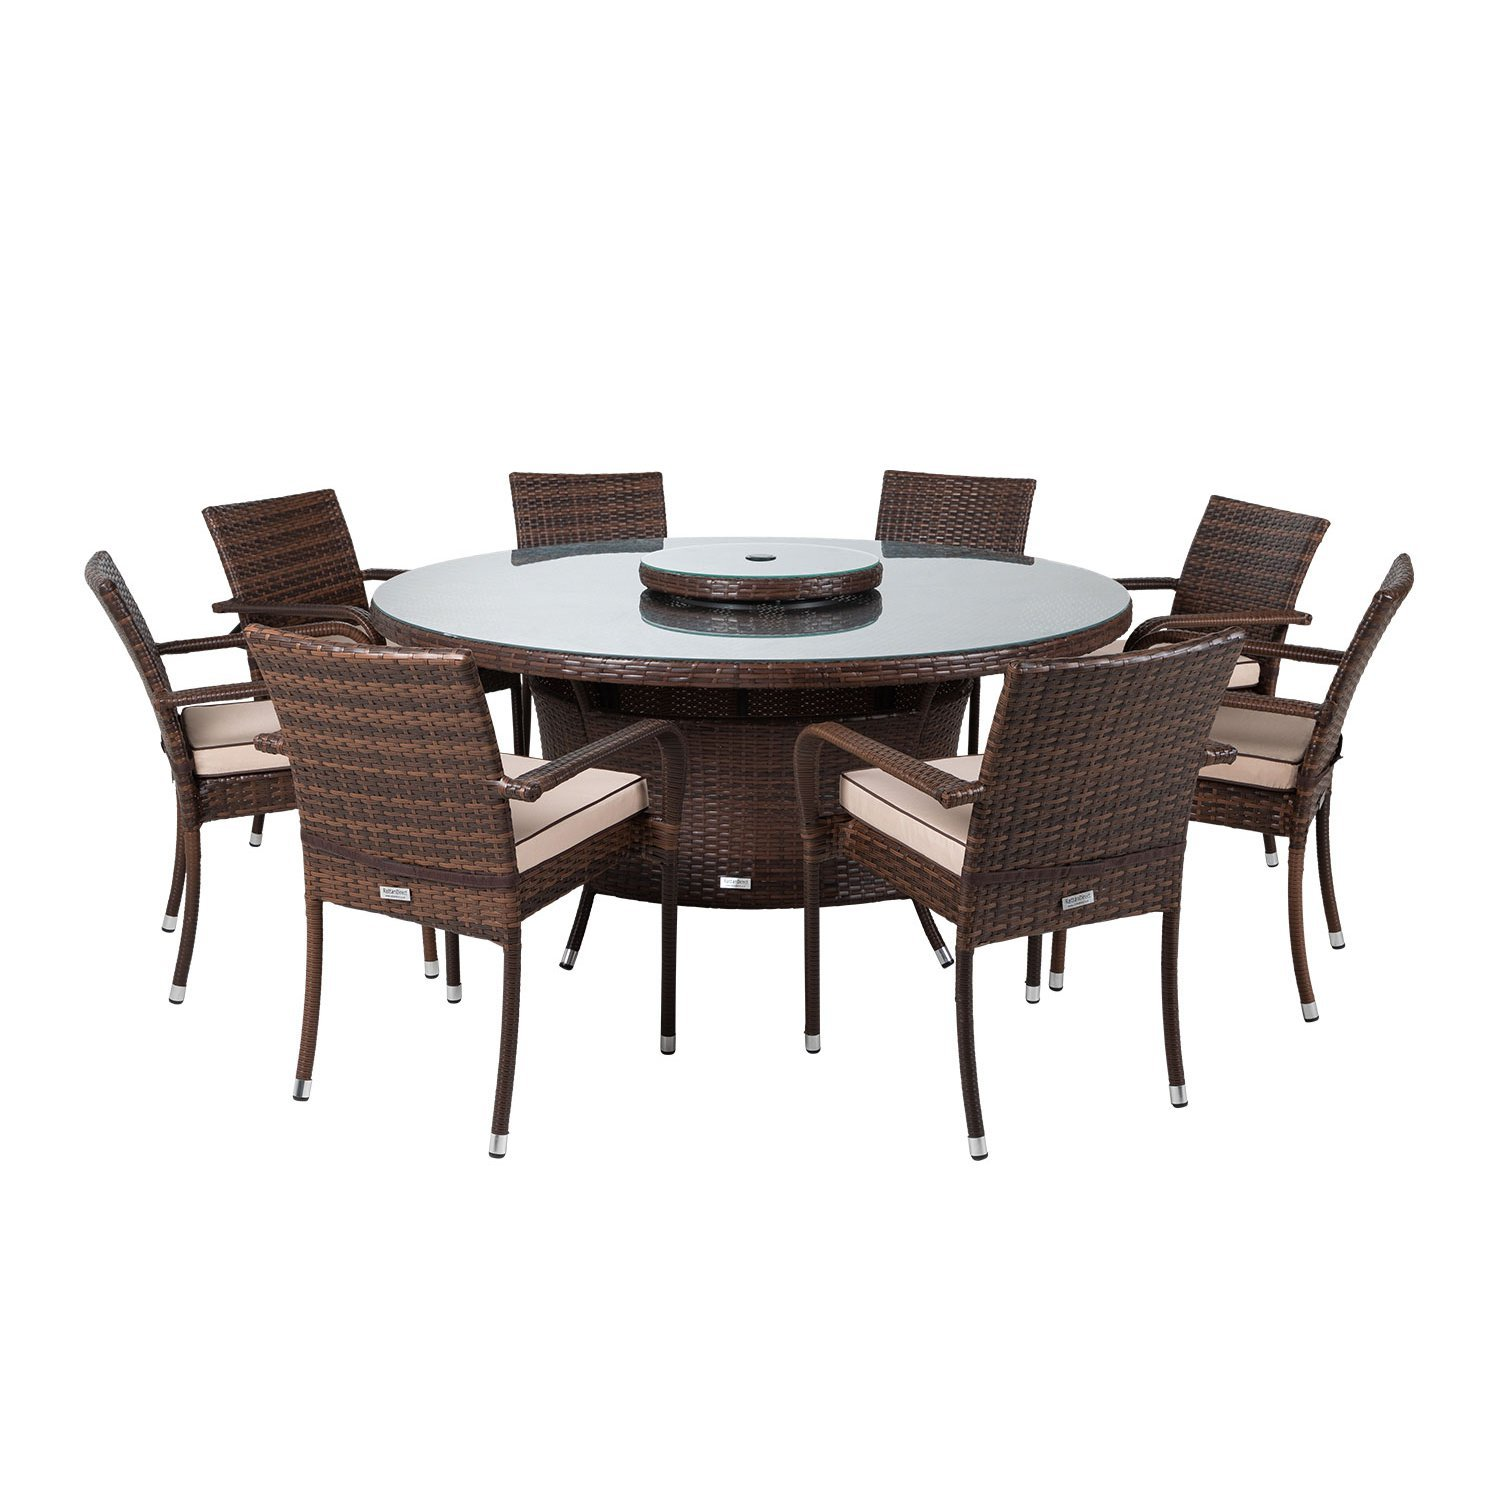 image-Roma 8 Rattan Garden Chairs, Large Round Dining Table and Lazy Susan Set in Chocolate and Cream